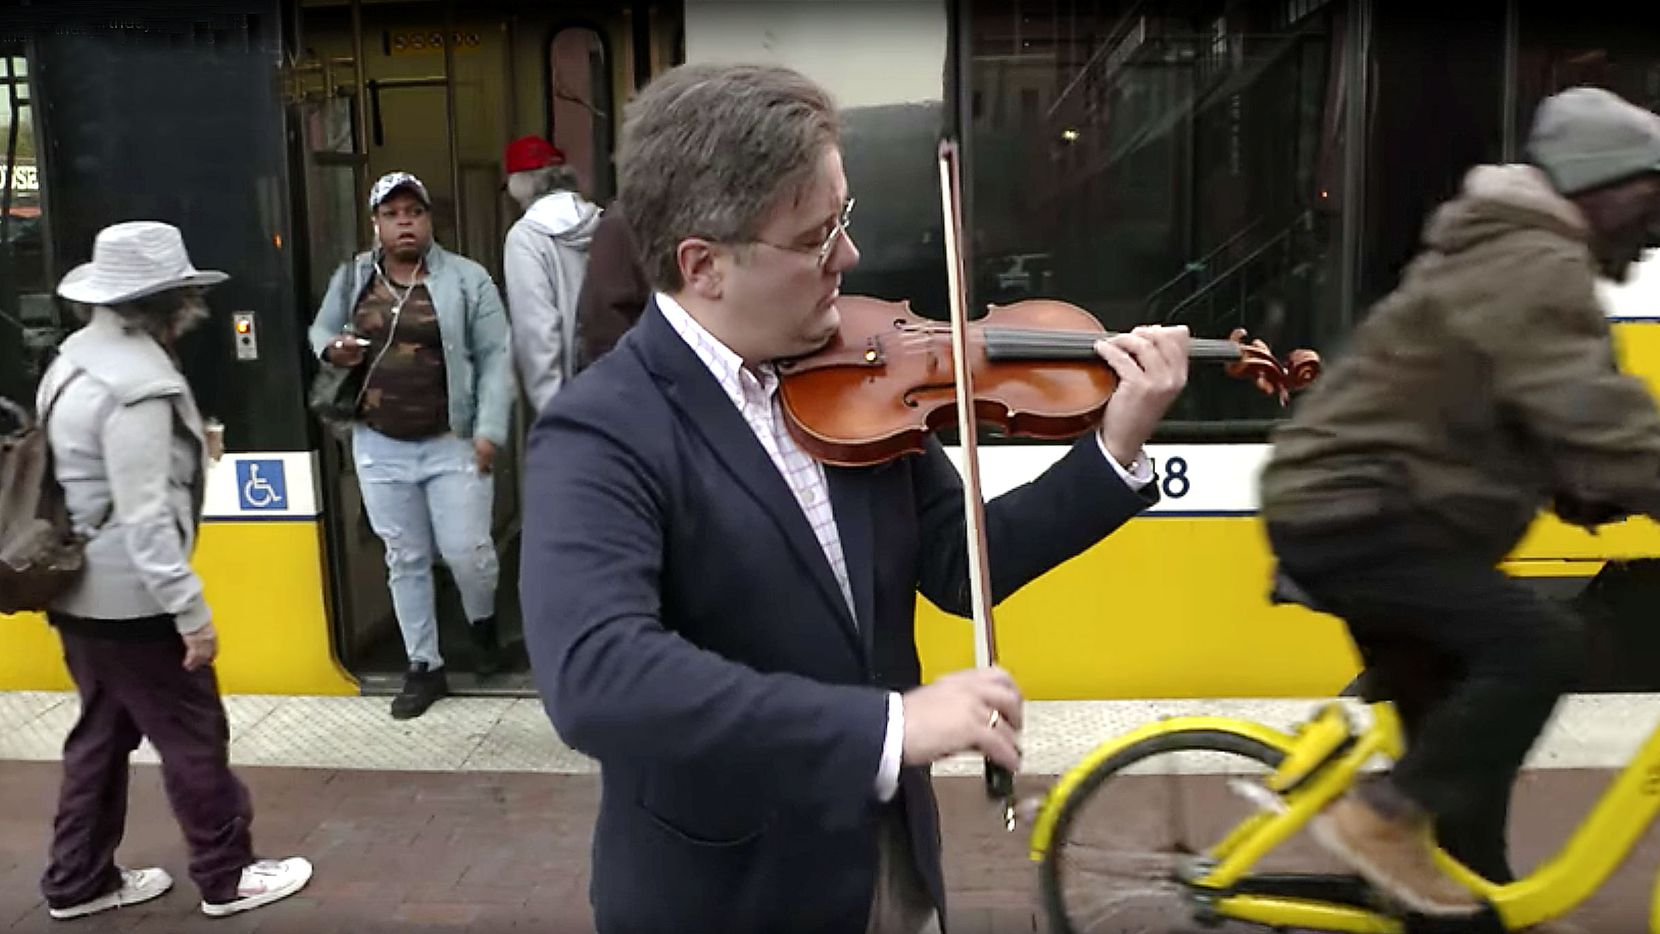 Aaron Boyd, director of chamber music at Southern Methodist University, performs on Johann Sebastian Bach's birthday, Wednesday, March 21, 2018, at a DART train station in downtown Dallas.